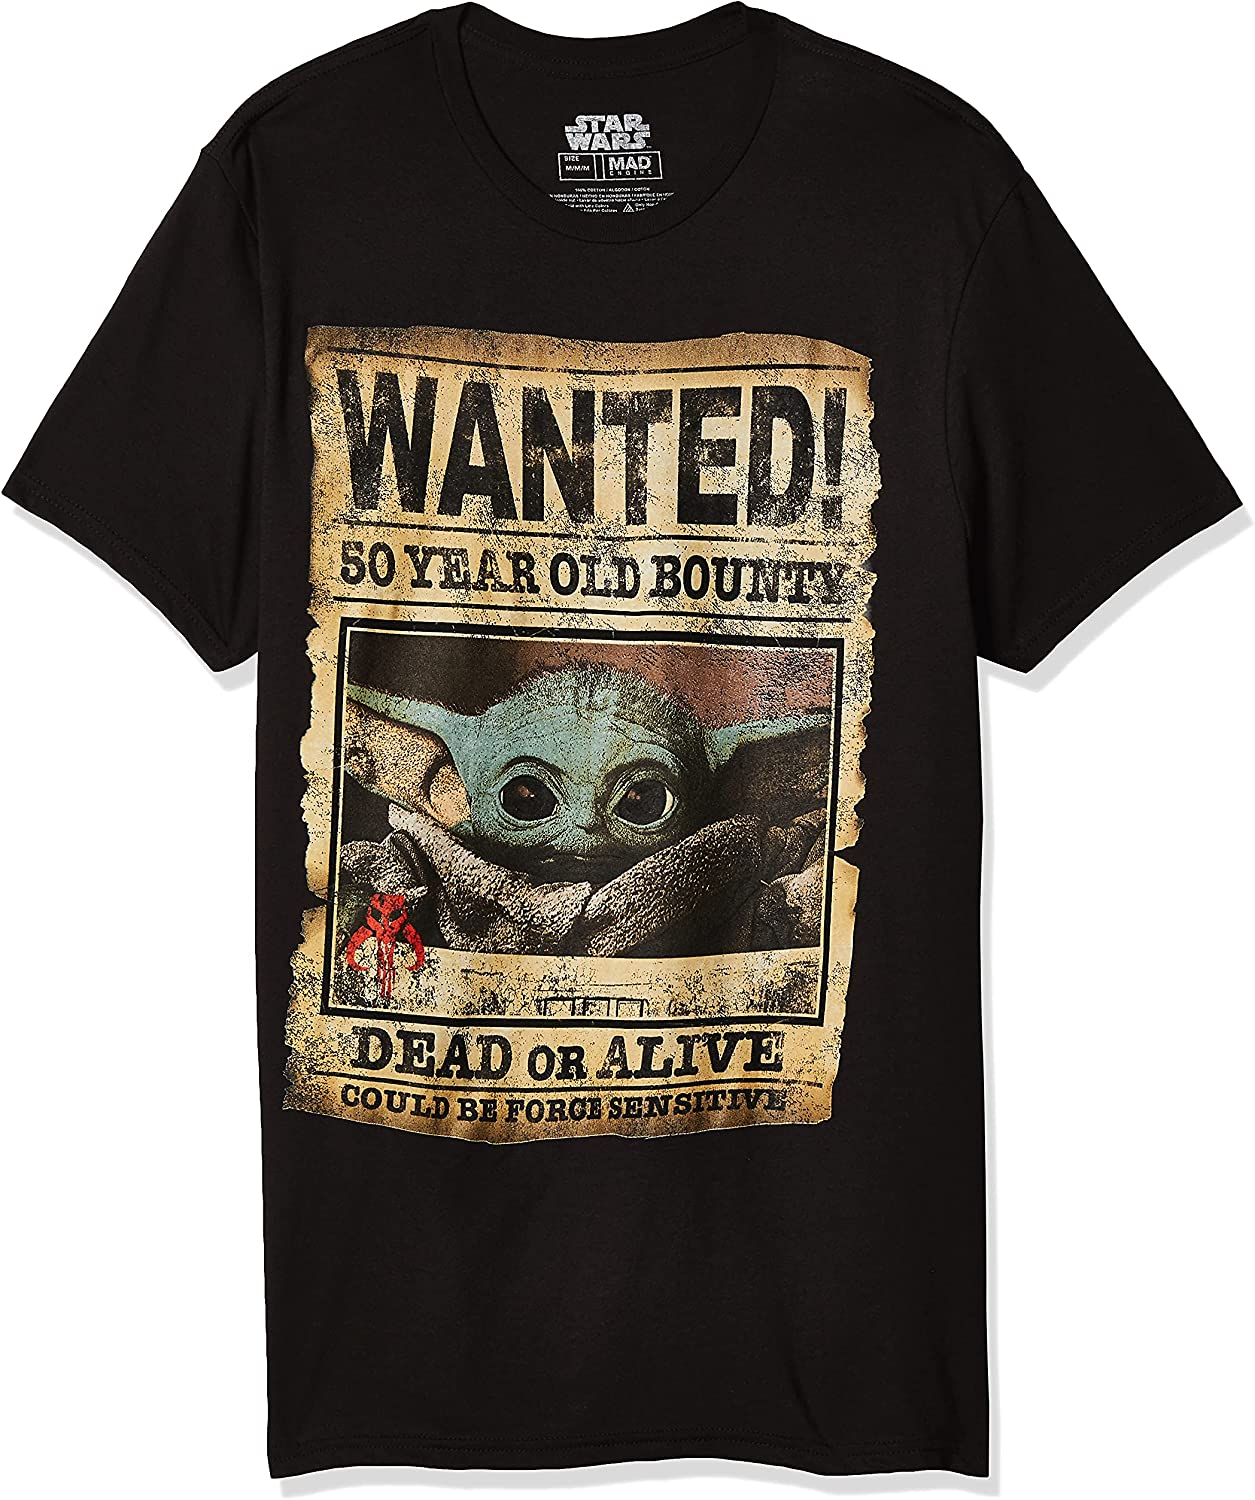 STAR WARS Men's Baby Yoda T-Shir Mandalorian Poster Child Wanted Sales of SALE items from new works Rare